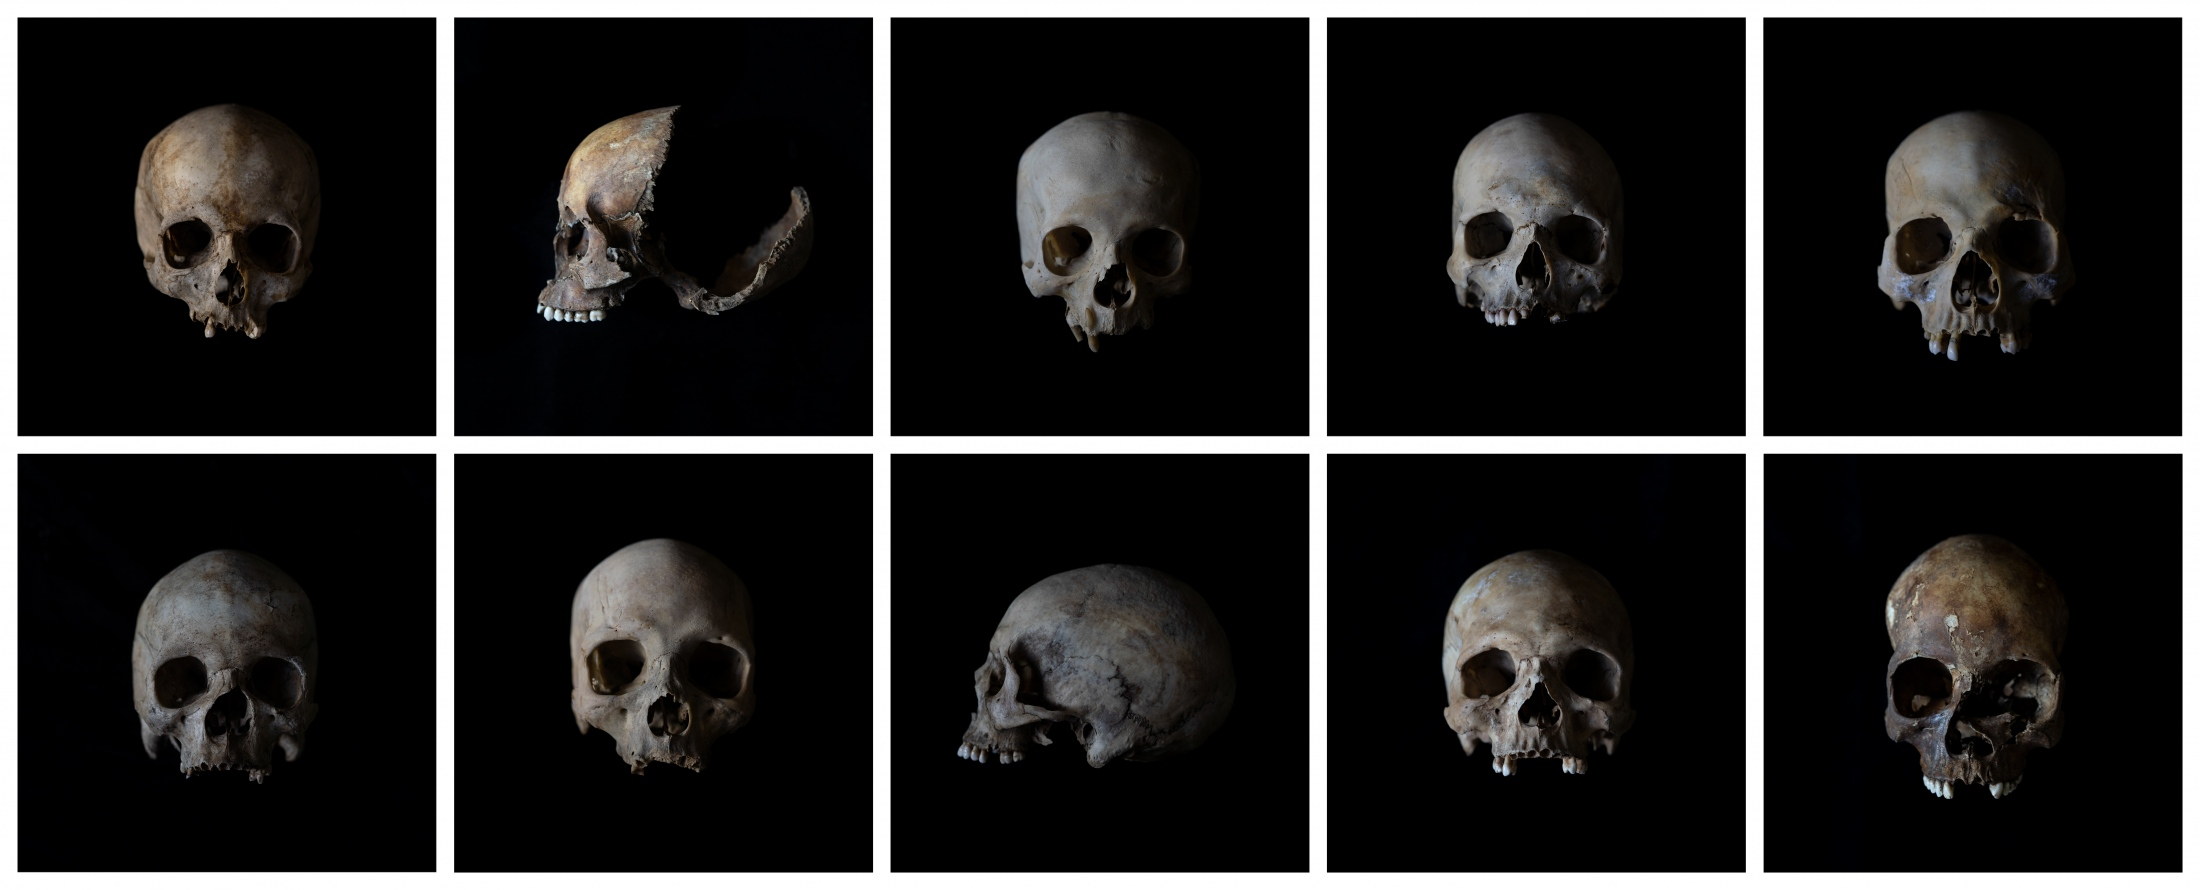 In this Monday Oct. 1, 2018, collection of photographs, the skulls of unidentified people are put on a table at the Johannesburg morgue for identification purposes. Once a demographic profile is estimated it will go to the victim identification center in the South African police department to create a facial reconstruction.